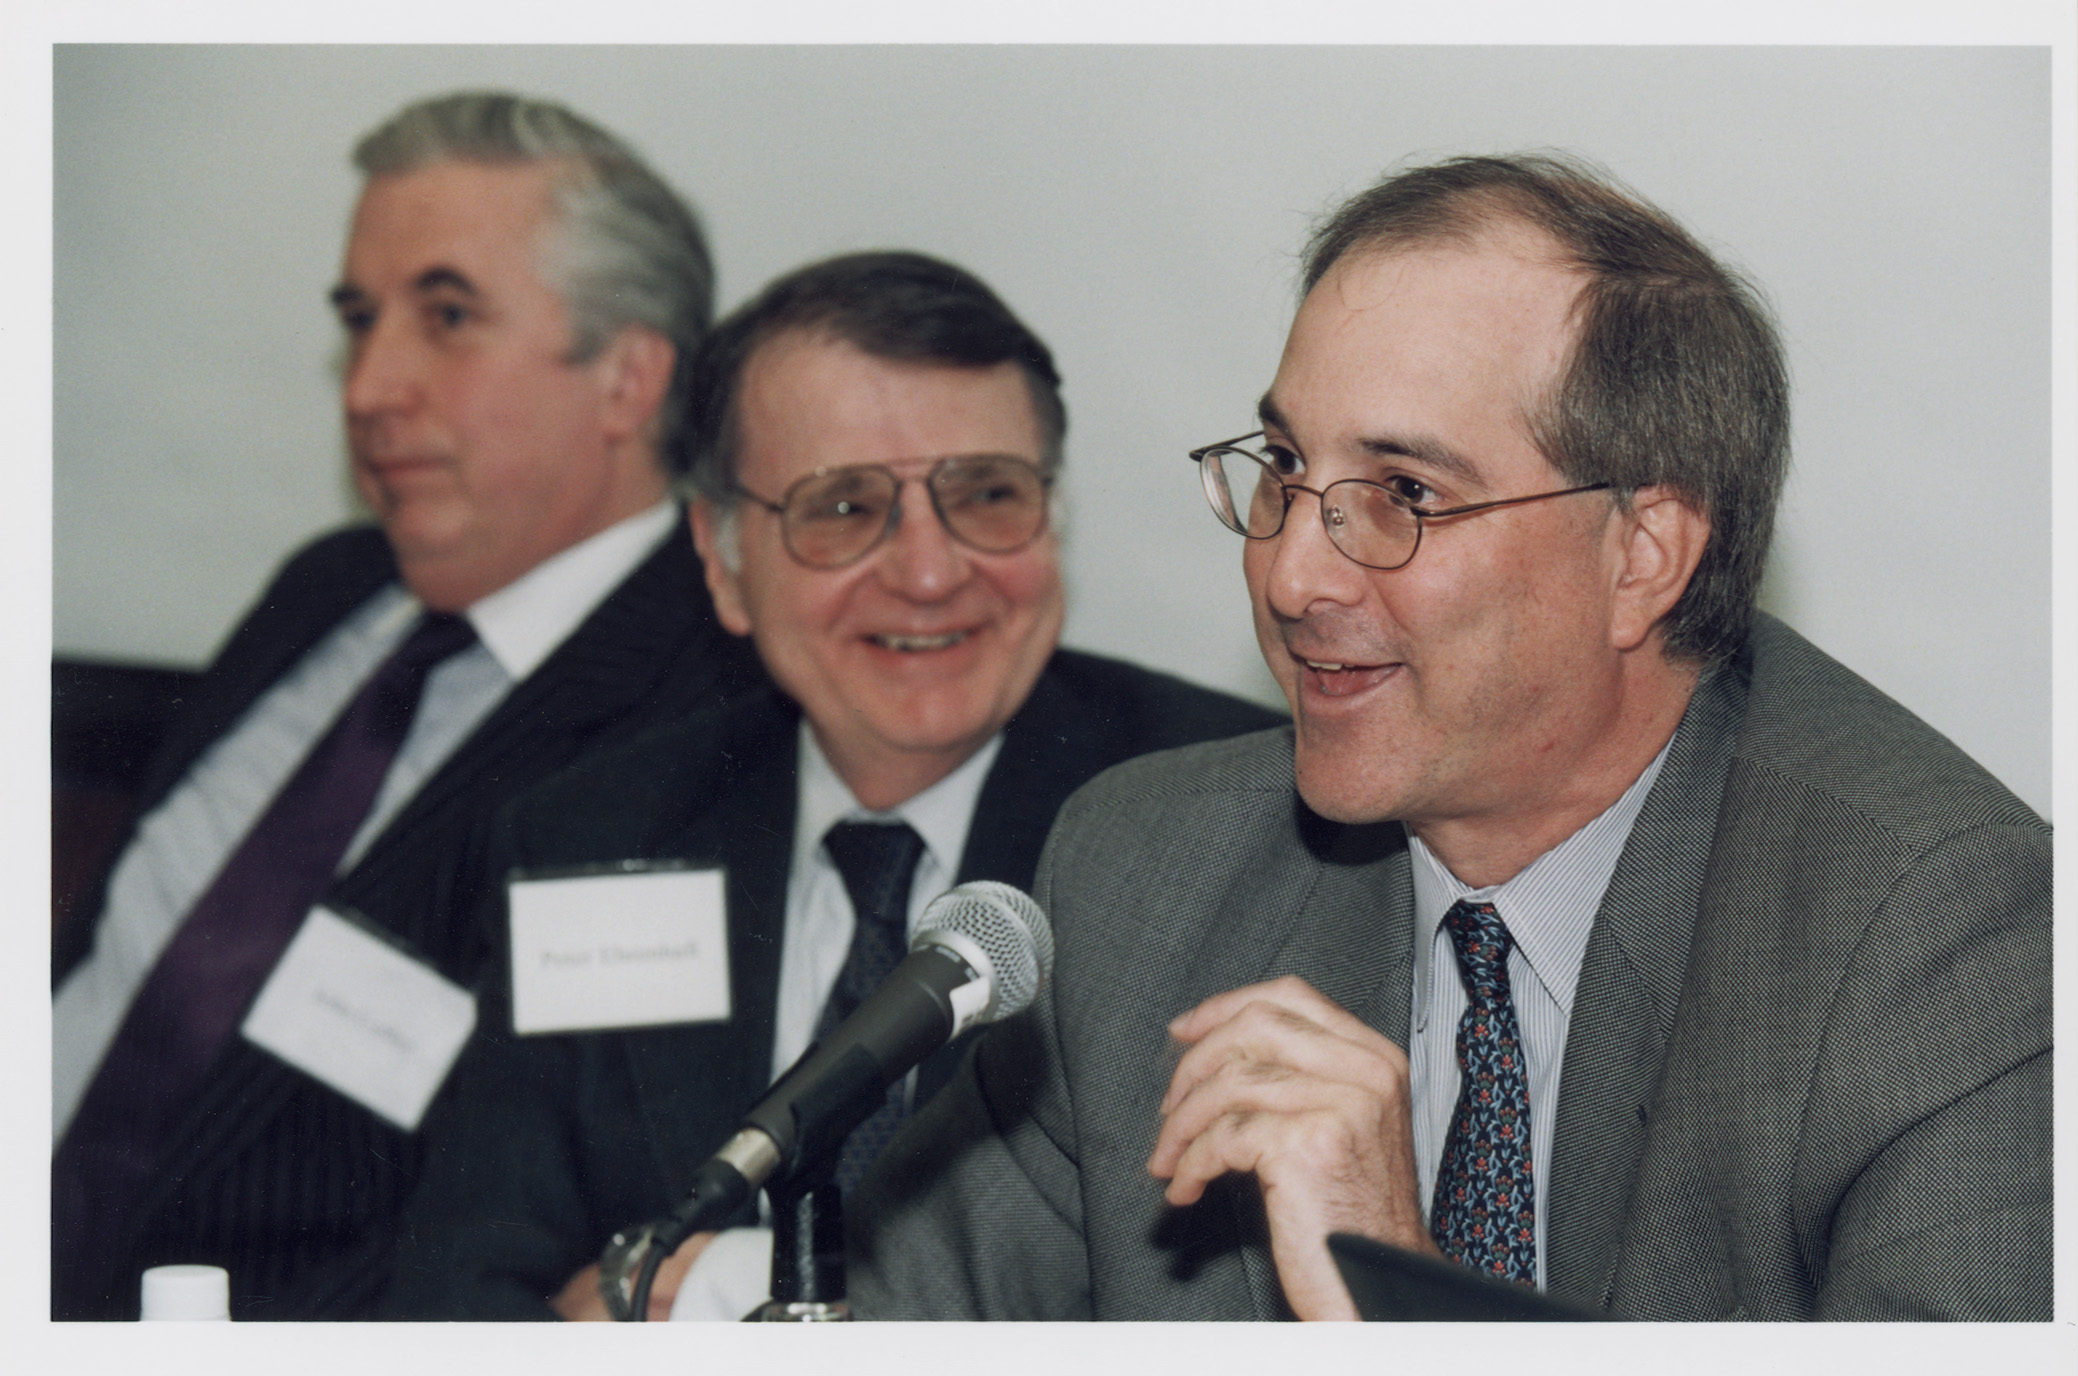 Steven Kargman '86 (foreground) and Columbia Law Prof. John C. Coffee, Jr. '69 and Peter D. Ehrenhaft (background)